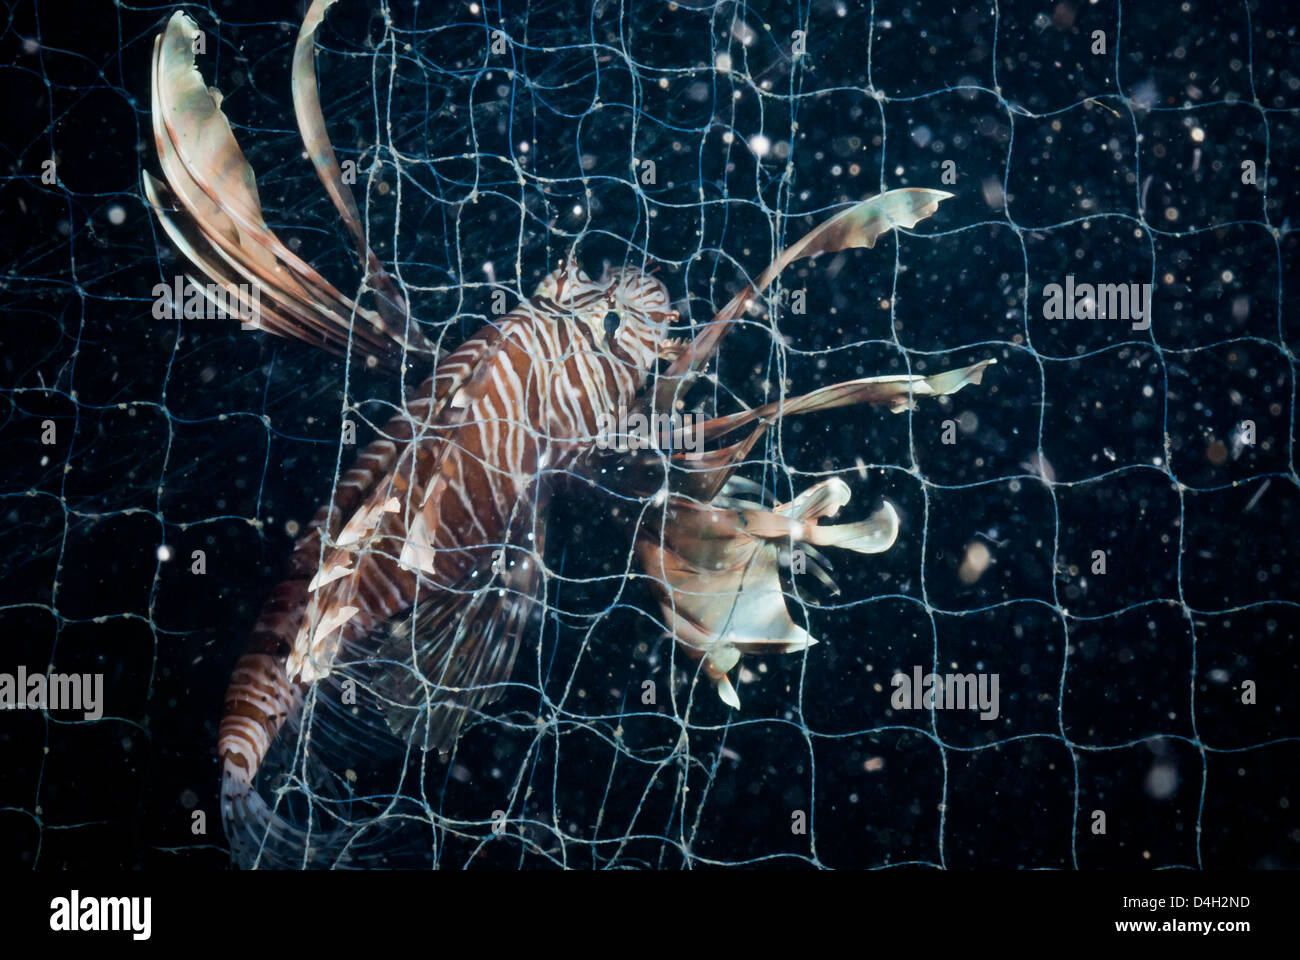 Scorpionfish caught in fishing net, Southern Thailand, Andaman Sea, Indian Ocean, Southeast Asia - Stock Image